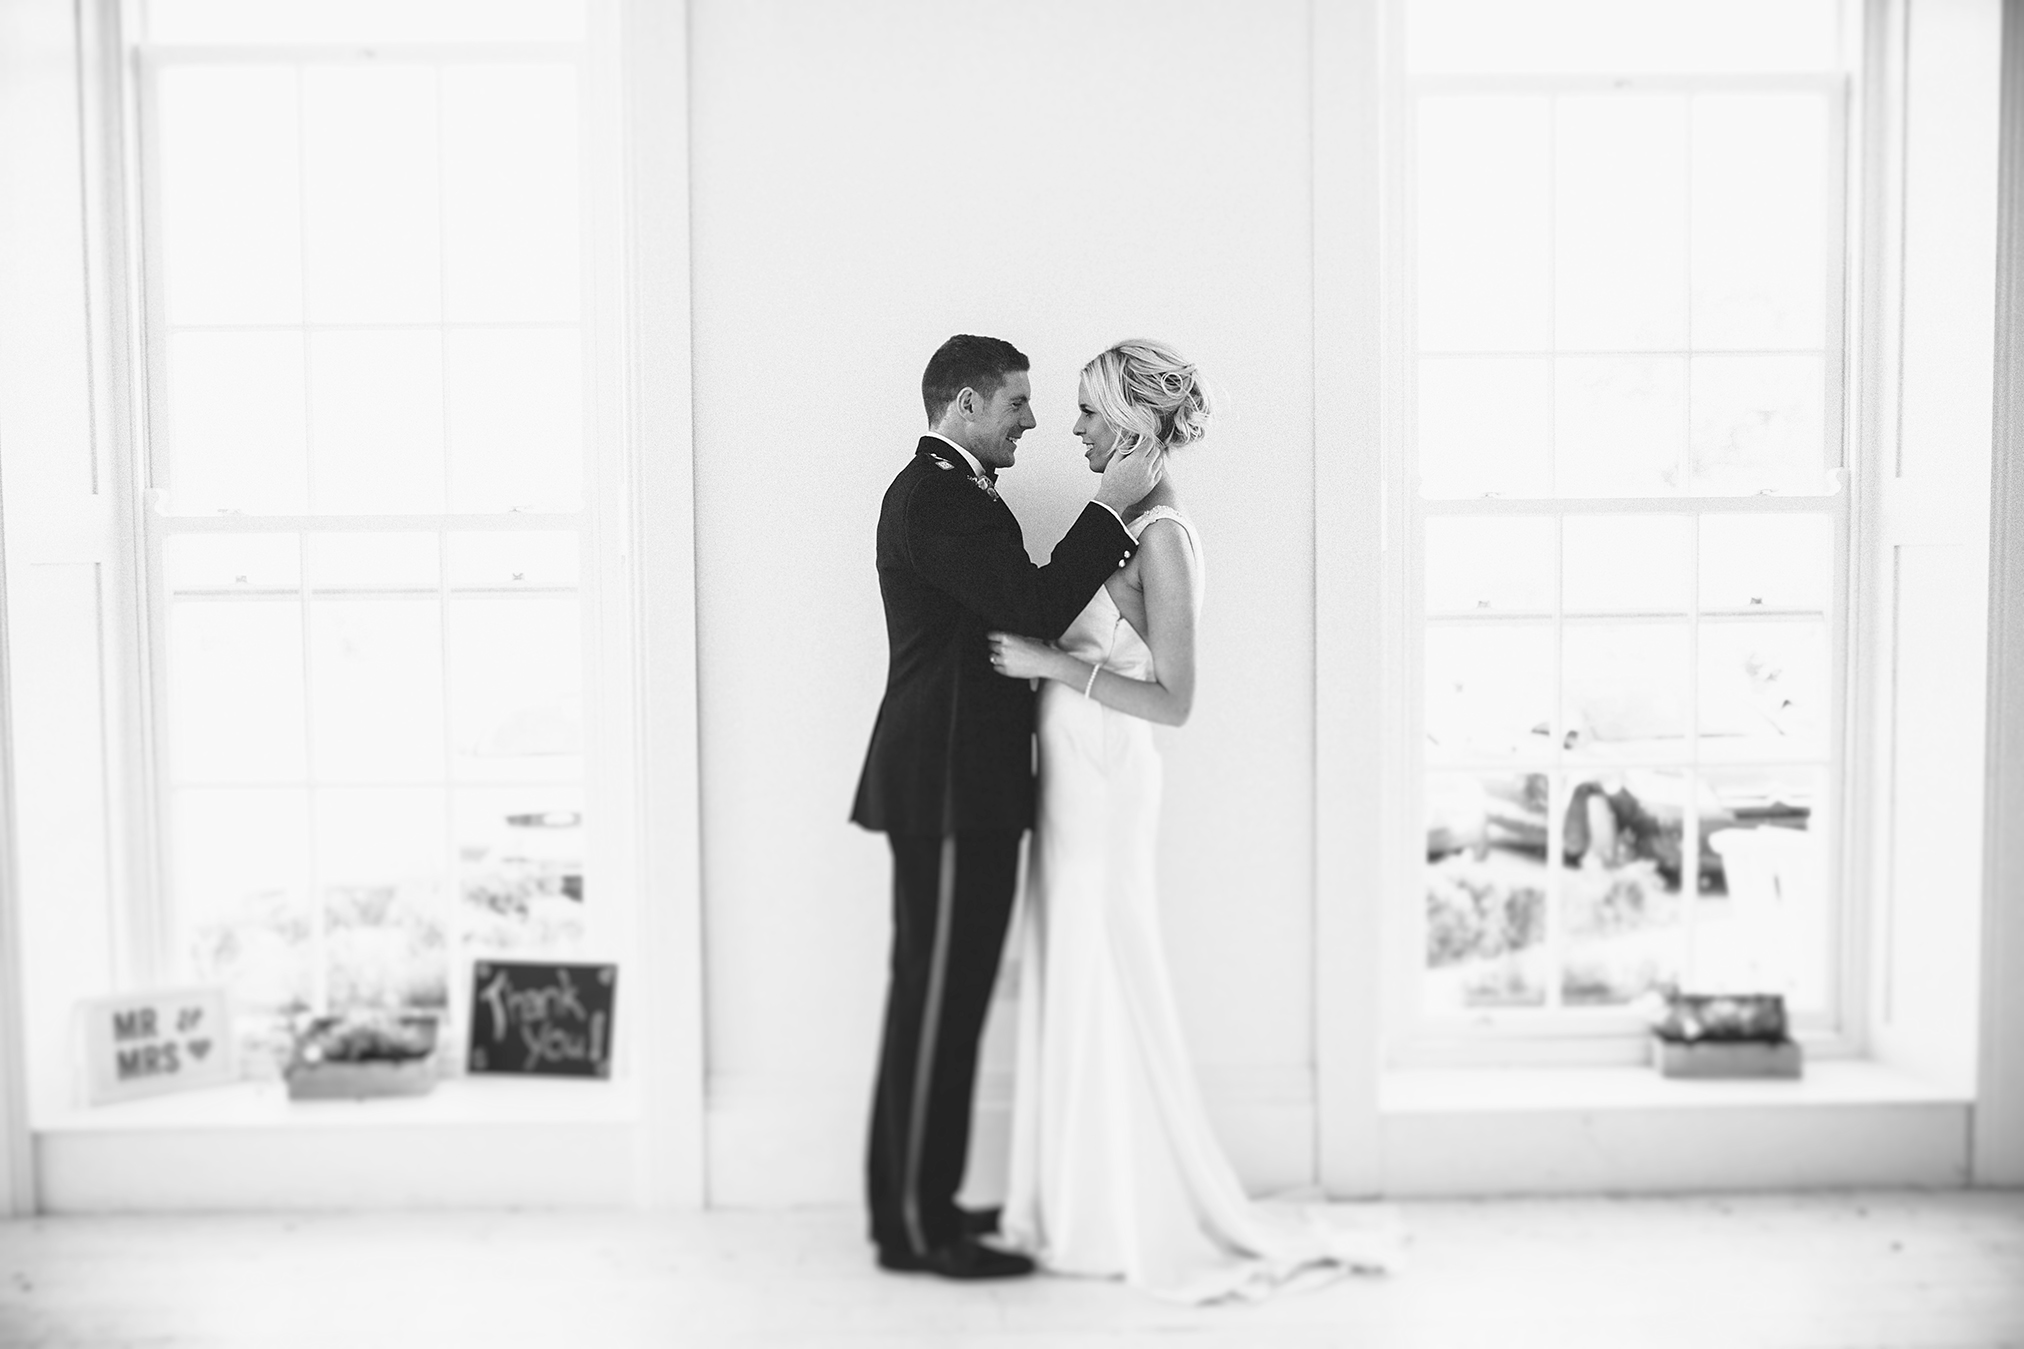 Wedding photographer Ireland Graciela Vilagudin 760.jpg